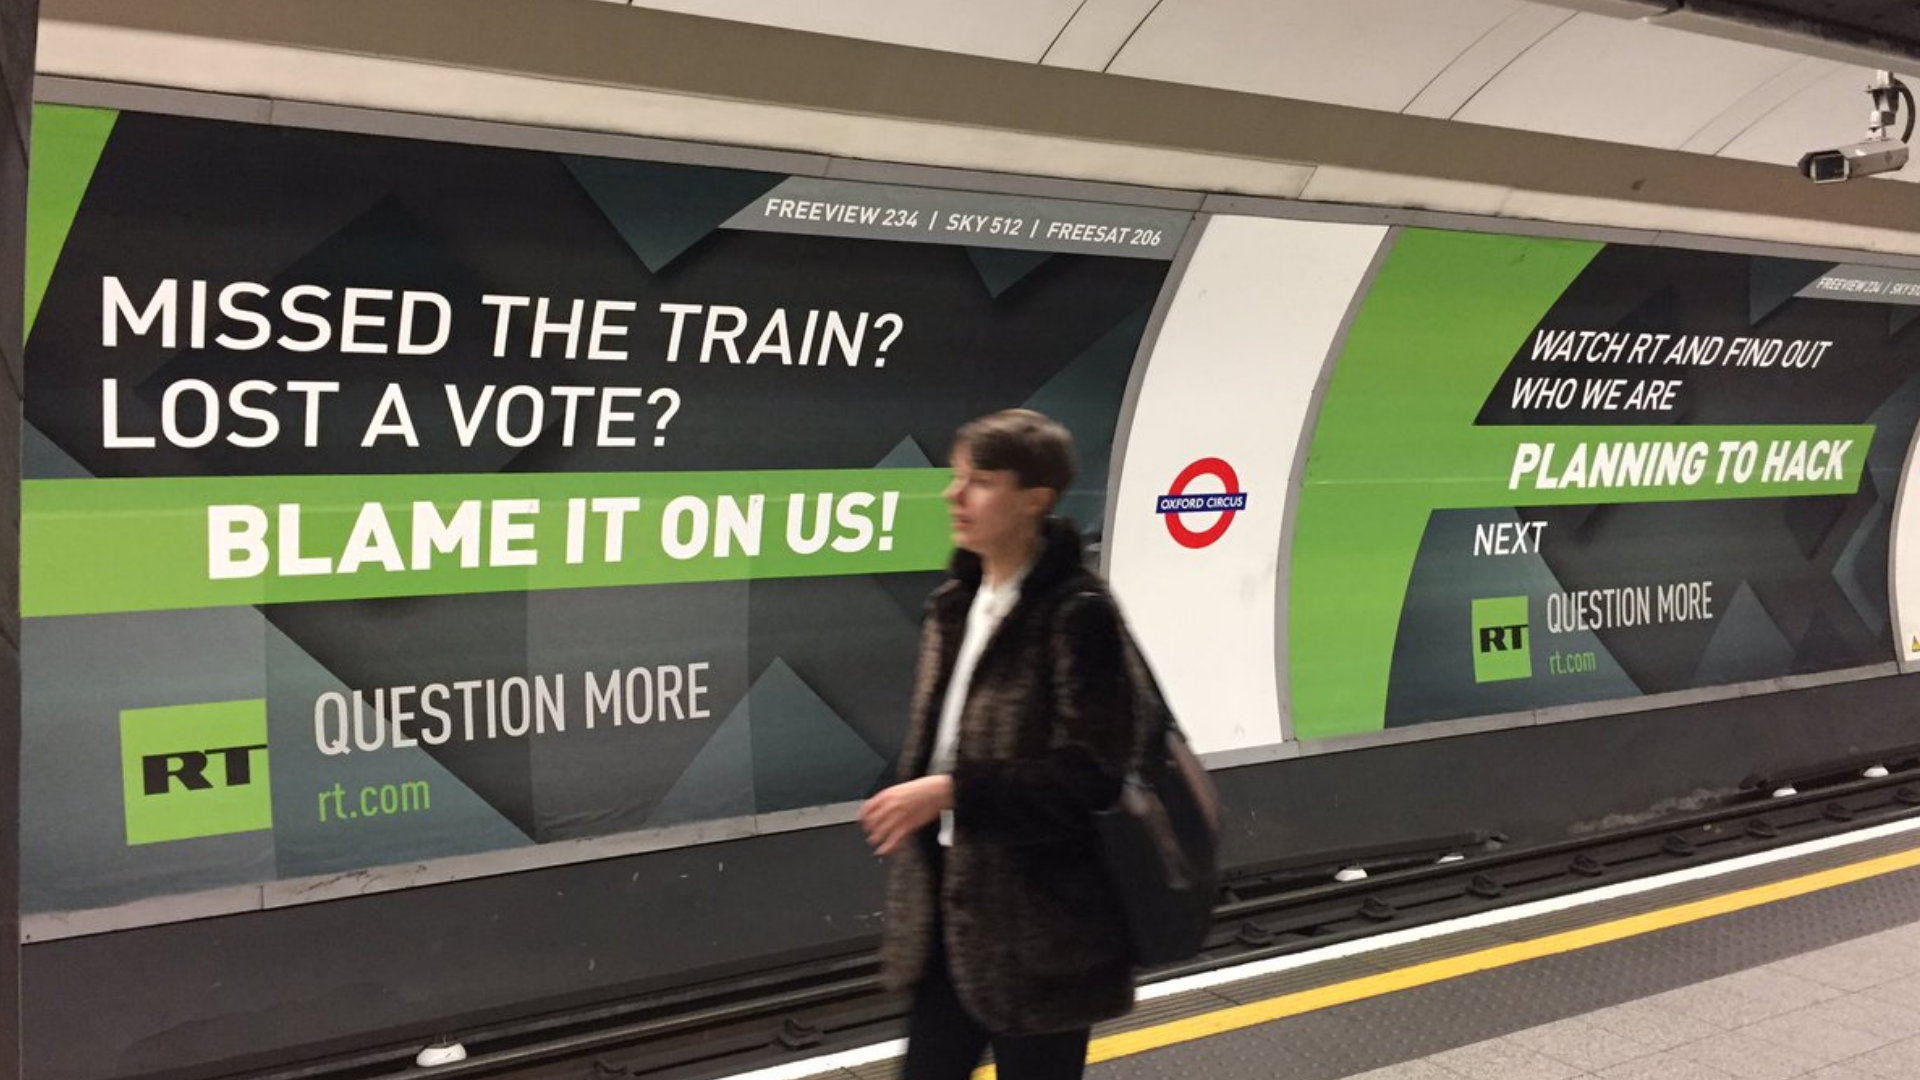 Russia Today Advertising on London Tube | Trendjackers